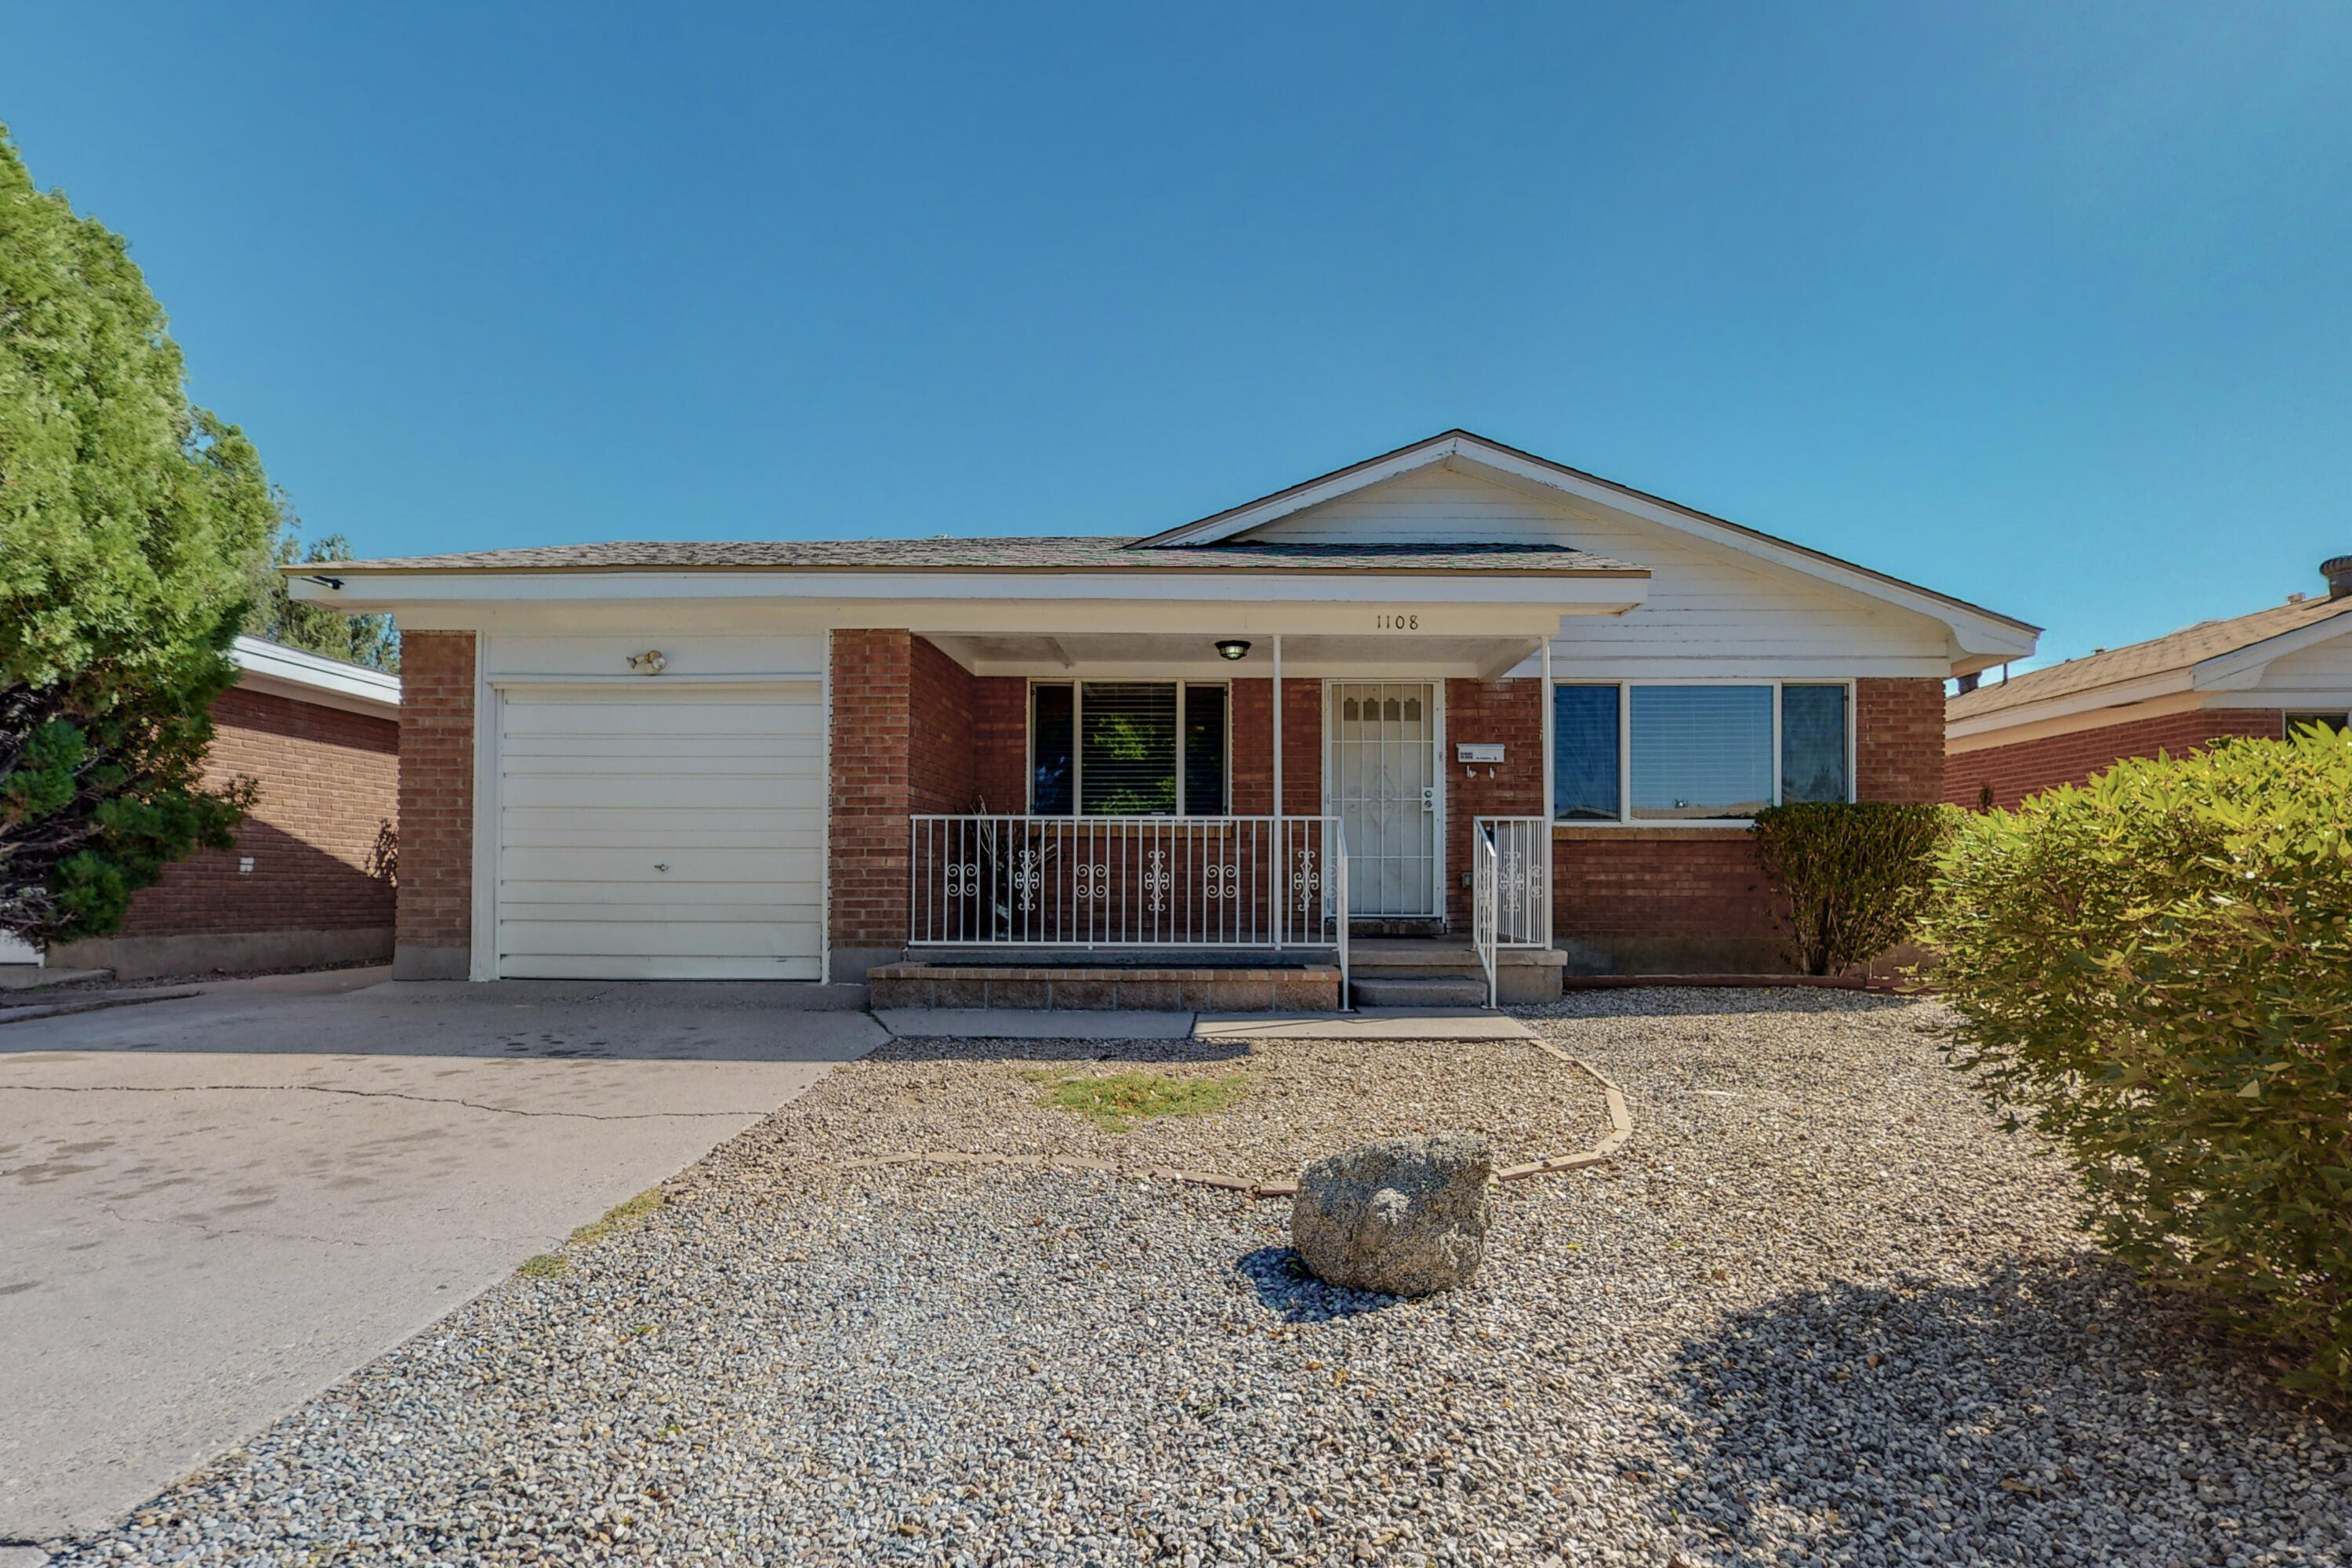 Welcome to this GEM of a home. Located minutes to Kirtland AFB and Sandia Labs . Convenient access to I-25, schools, restaurants & shopping. Open floor plan, flooded with natural light. 2 living areas, 3 bedrooms with a possible 4/flex room. Kitchen features granite countertops, solid wood cabinets and all kitchen appliances stay! Oversized laundry room. Refinished hardwood floors, thermal windows,  Roof approximately 5 years old. Mature private backyard, grass, trees and a covered patio. 1 car garage.